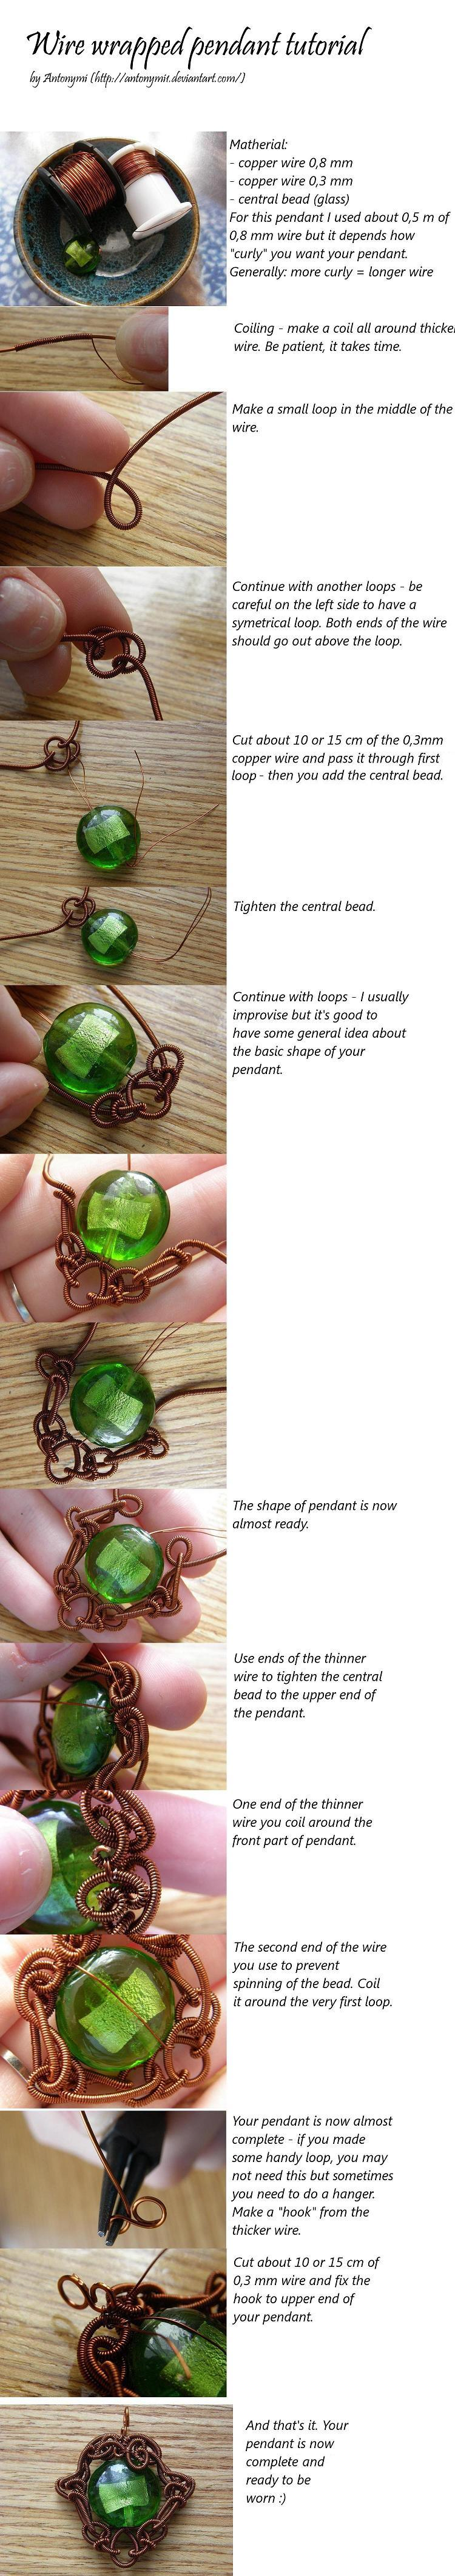 Wire wrapped pendant tutorial by antonymi1 on deviantart wire wrapped pendant tutorial by antonymi1 wire wrapped pendant tutorial by antonymi1 mozeypictures Image collections